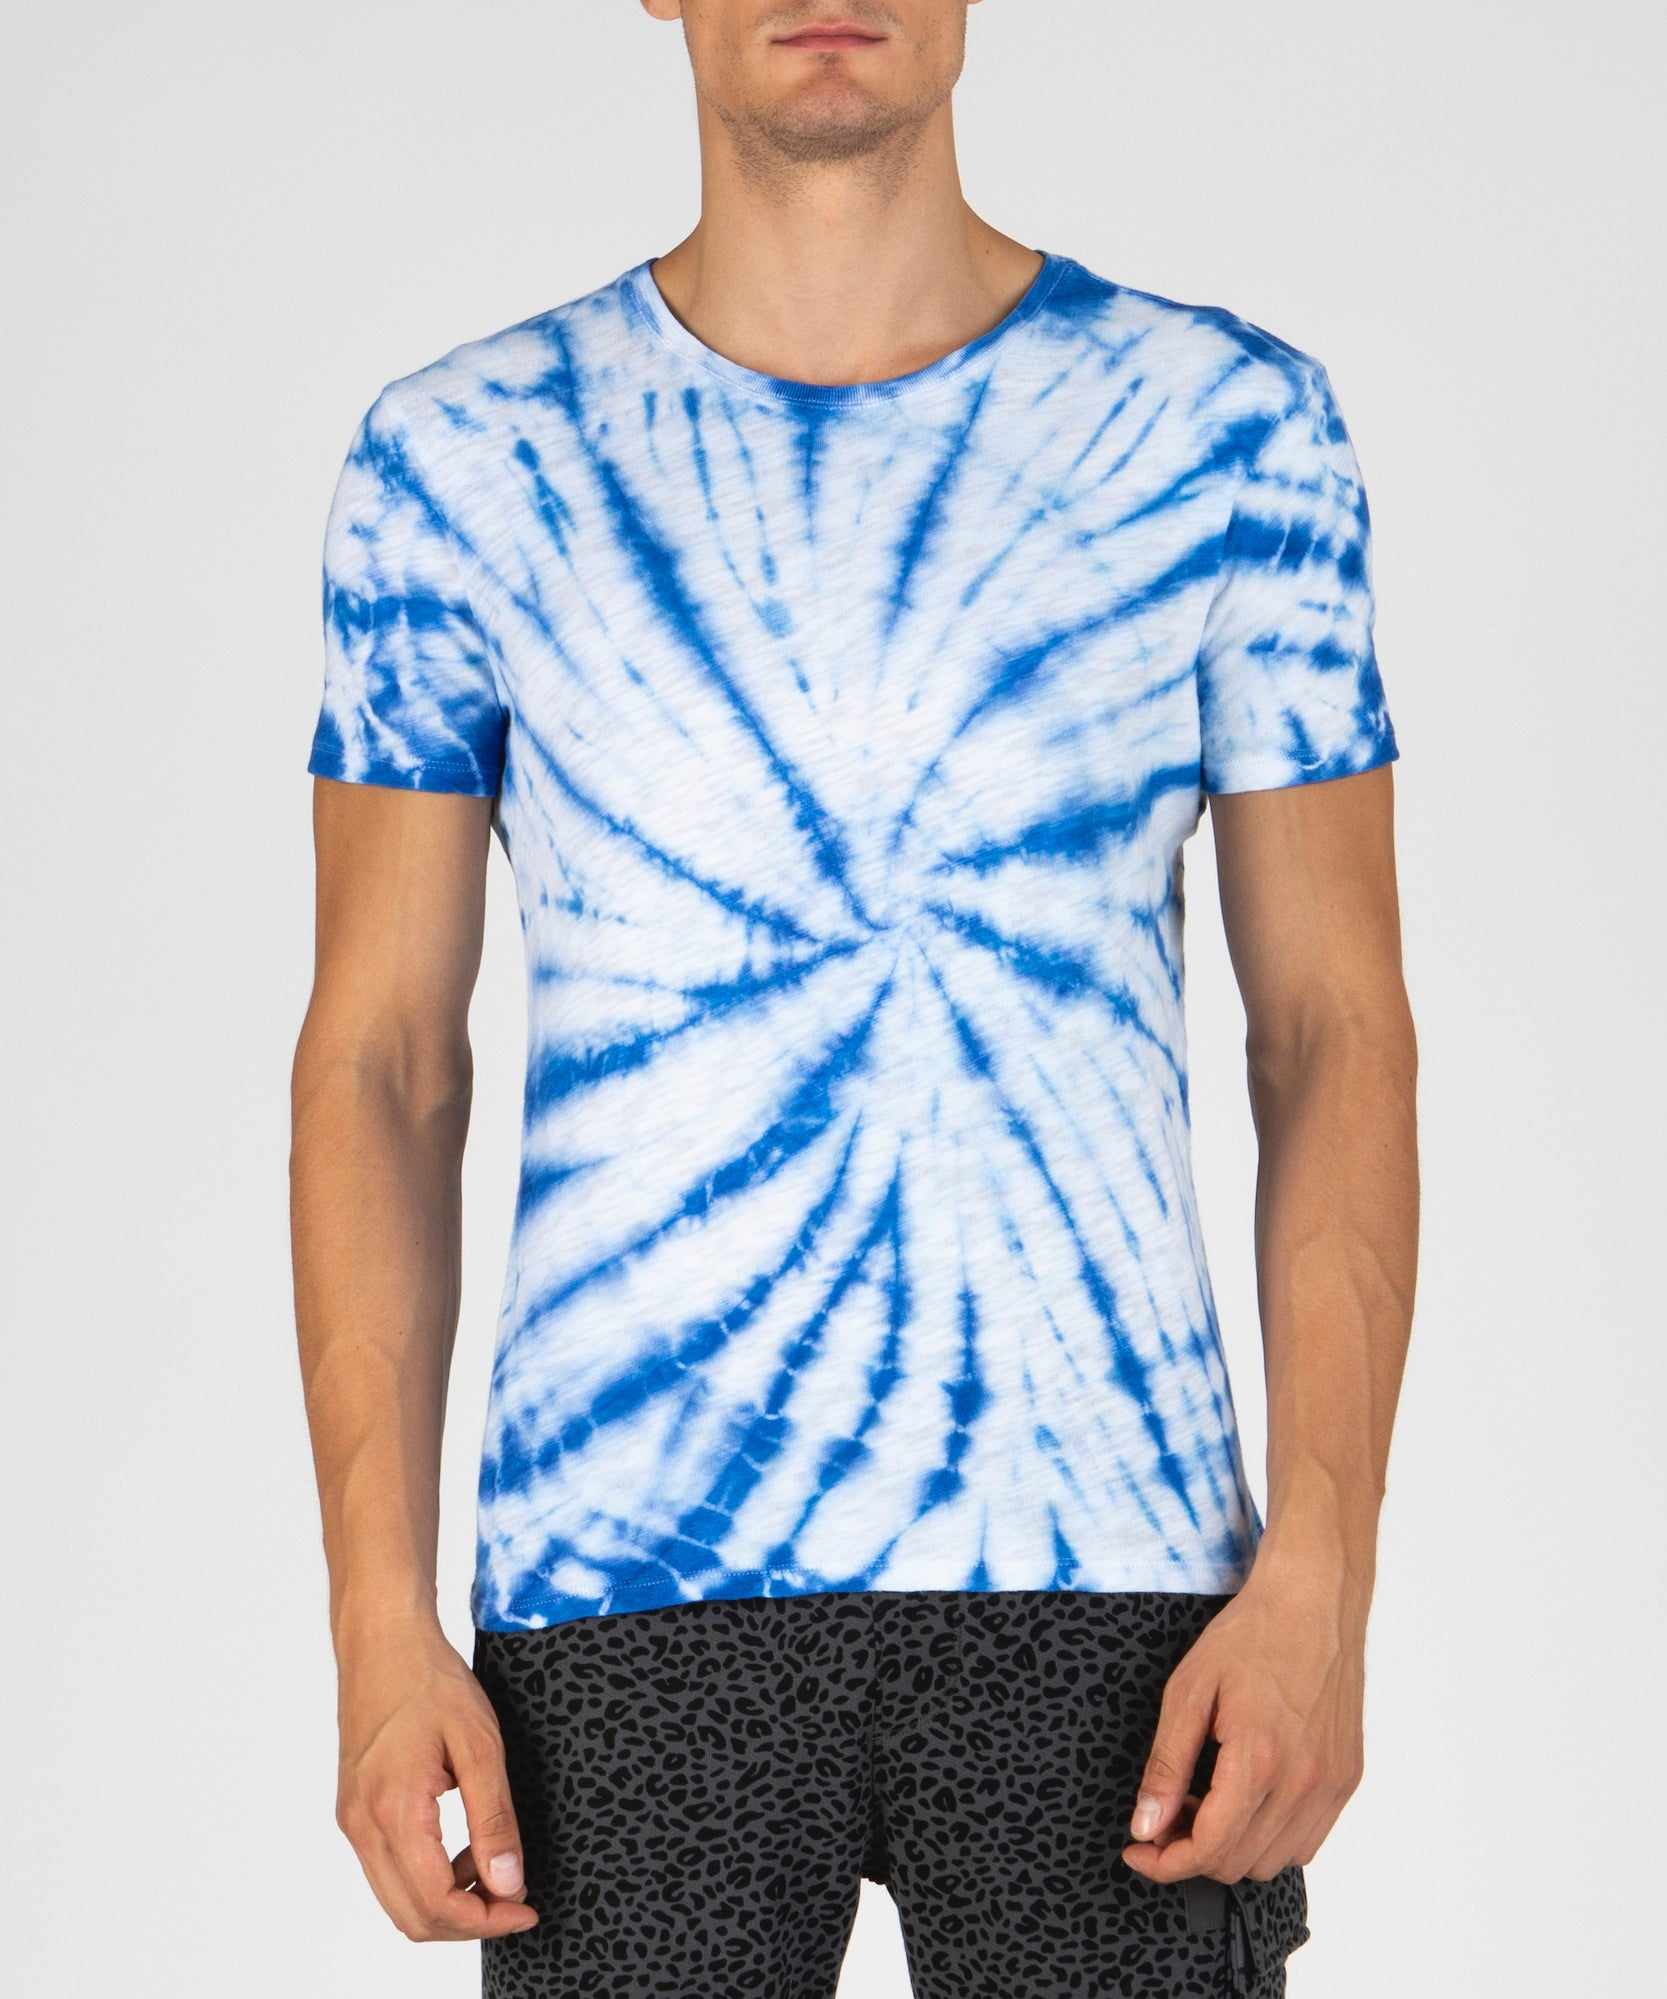 Lapis Blue Tie Dye Slub Jersey Crew Neck Tee - Men's Cotton Short Sleeve Tee by ATM Anthony Thomas Melillo